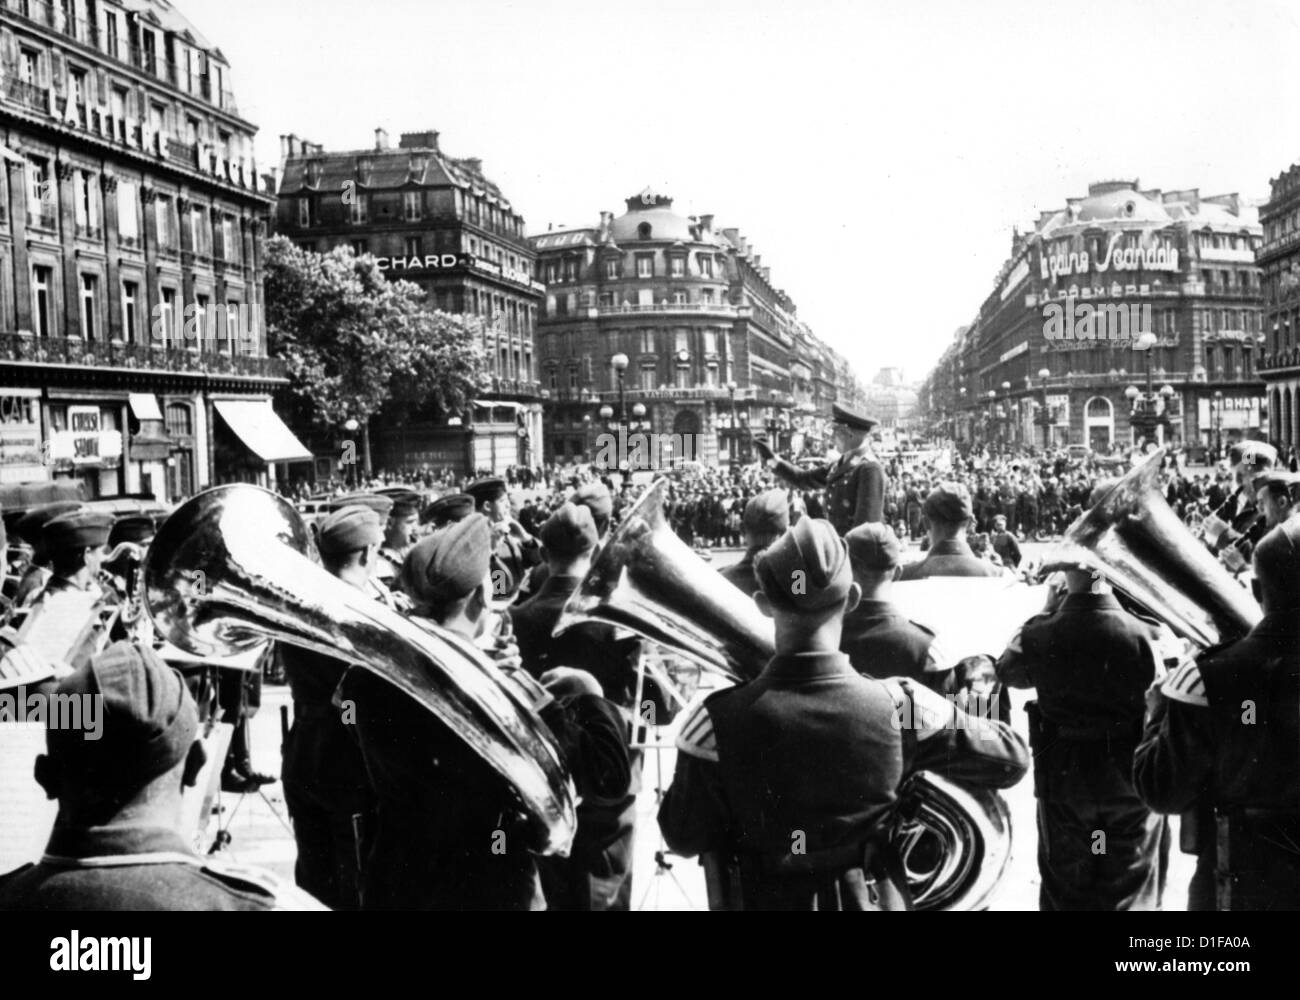 Concert of a German Air Force military band on Place de l'Opera in Paris in July 1940. Photo: Berliner Verlag/Archiv - Stock Image